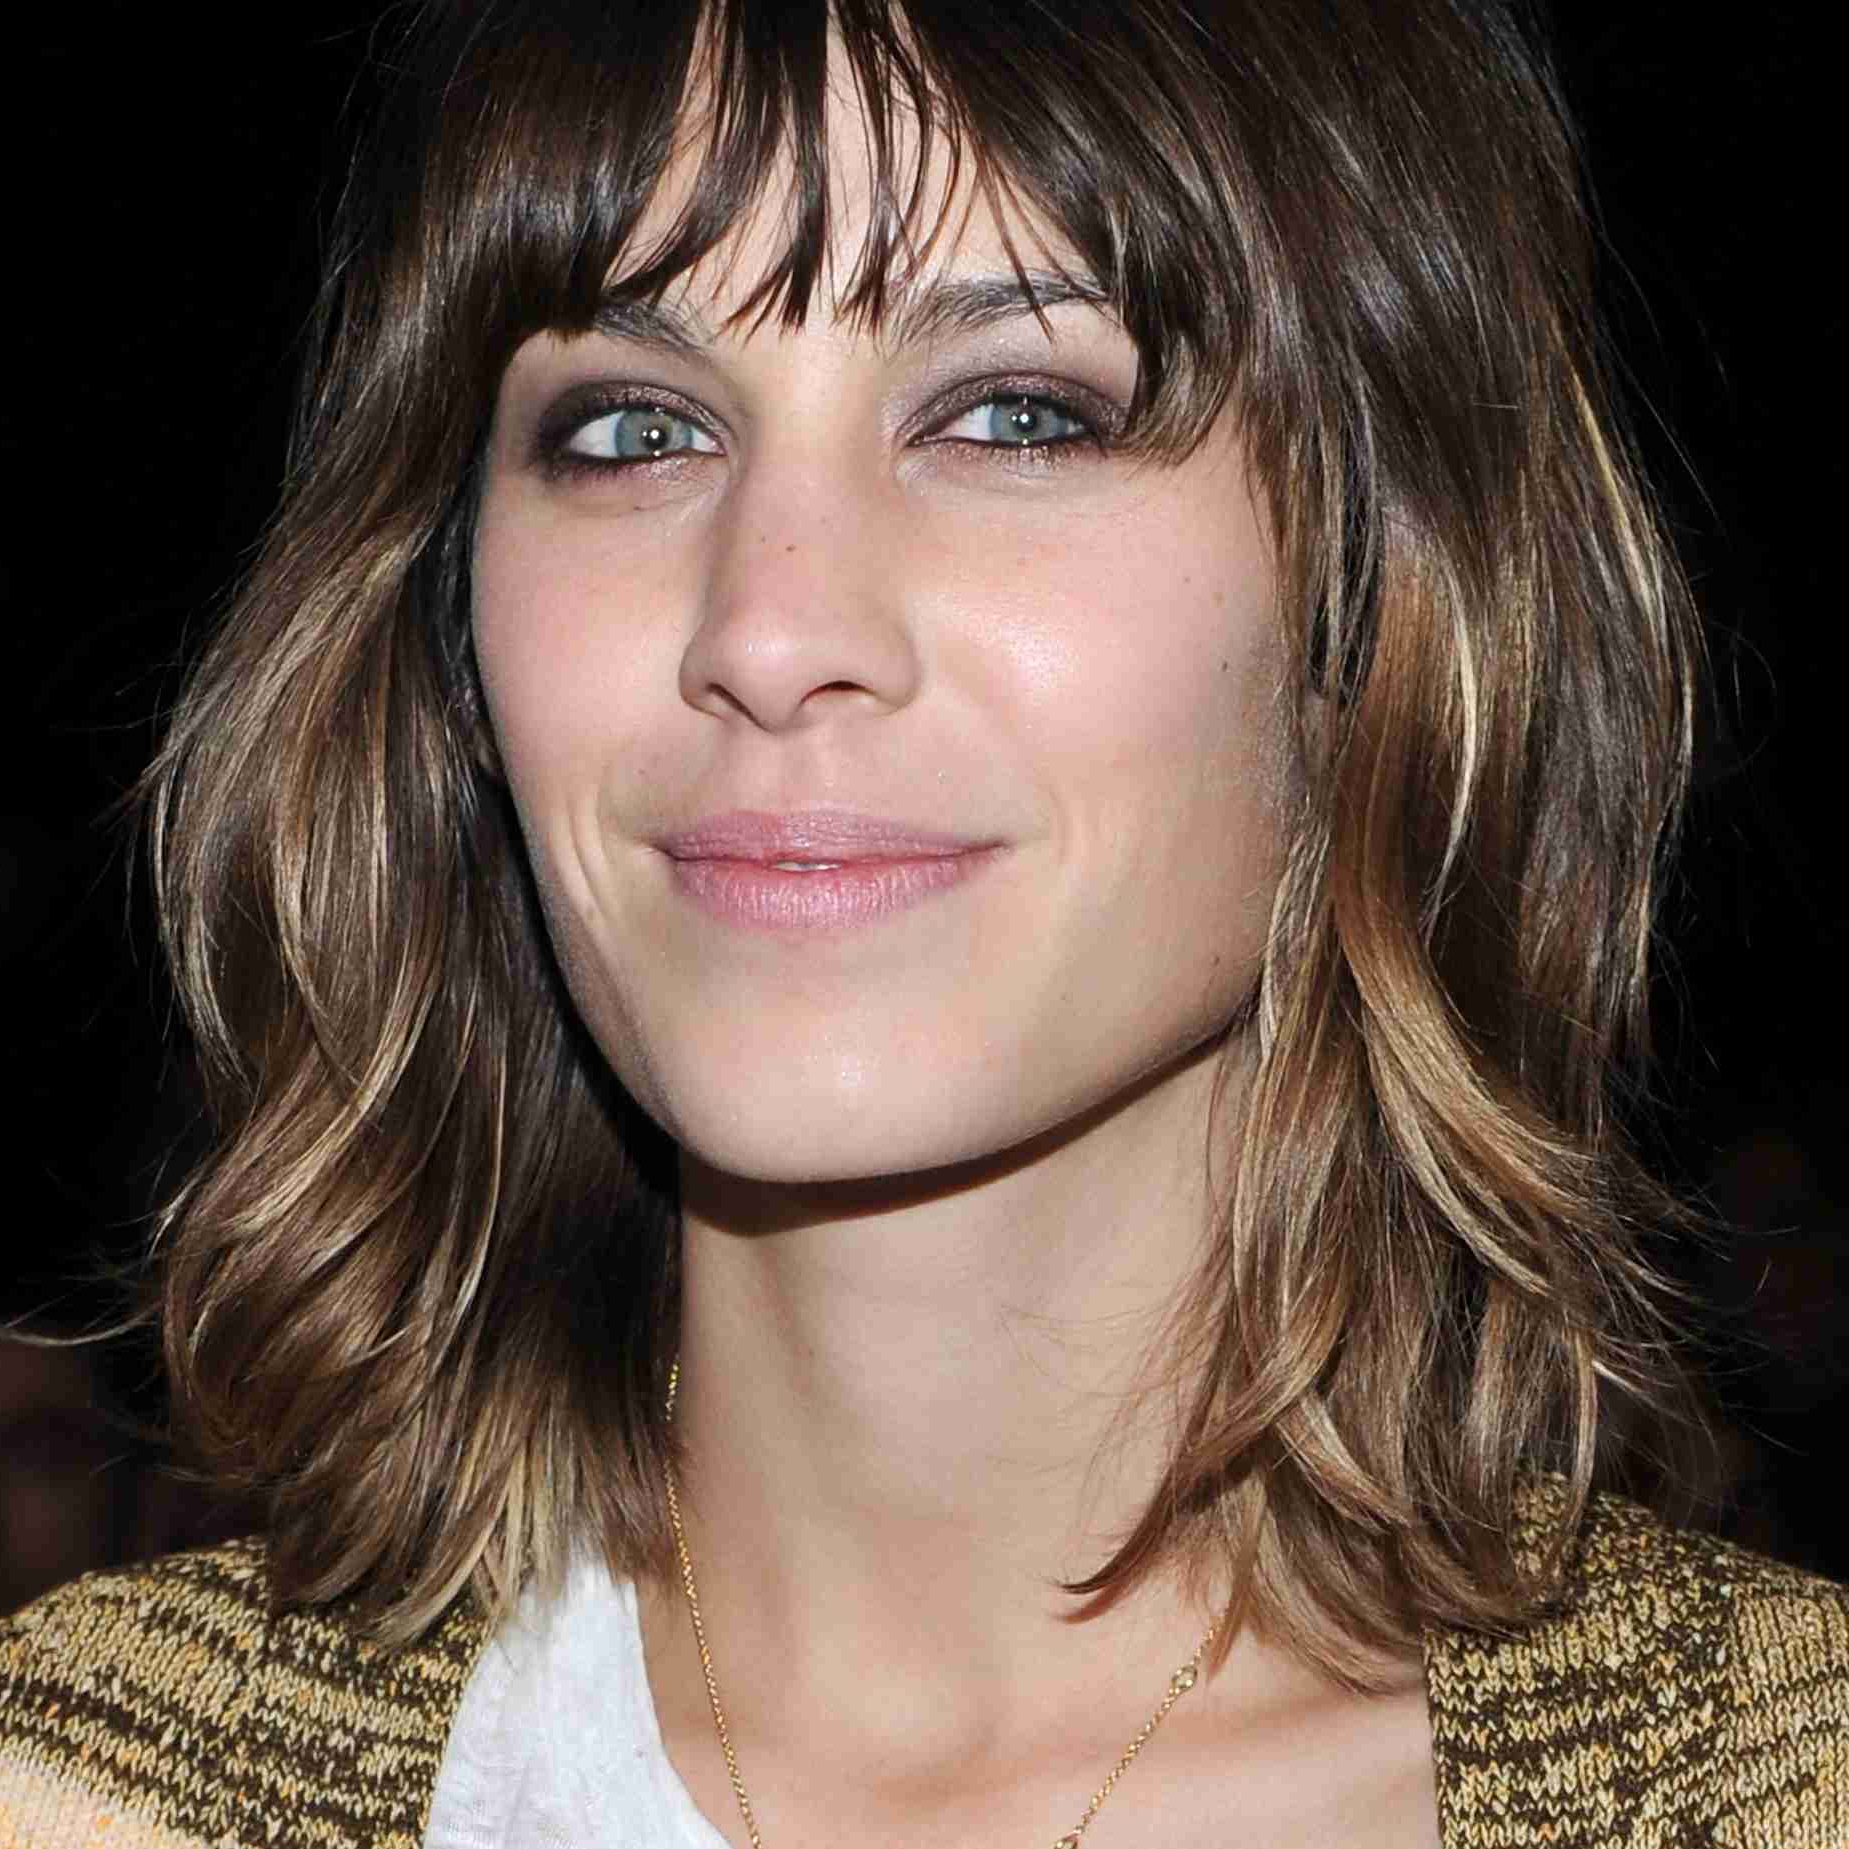 Can't Miss Shag Haircuts, From Short To Long Inside Shaggy Haircuts With Bangs And Longer Layers (View 16 of 20)